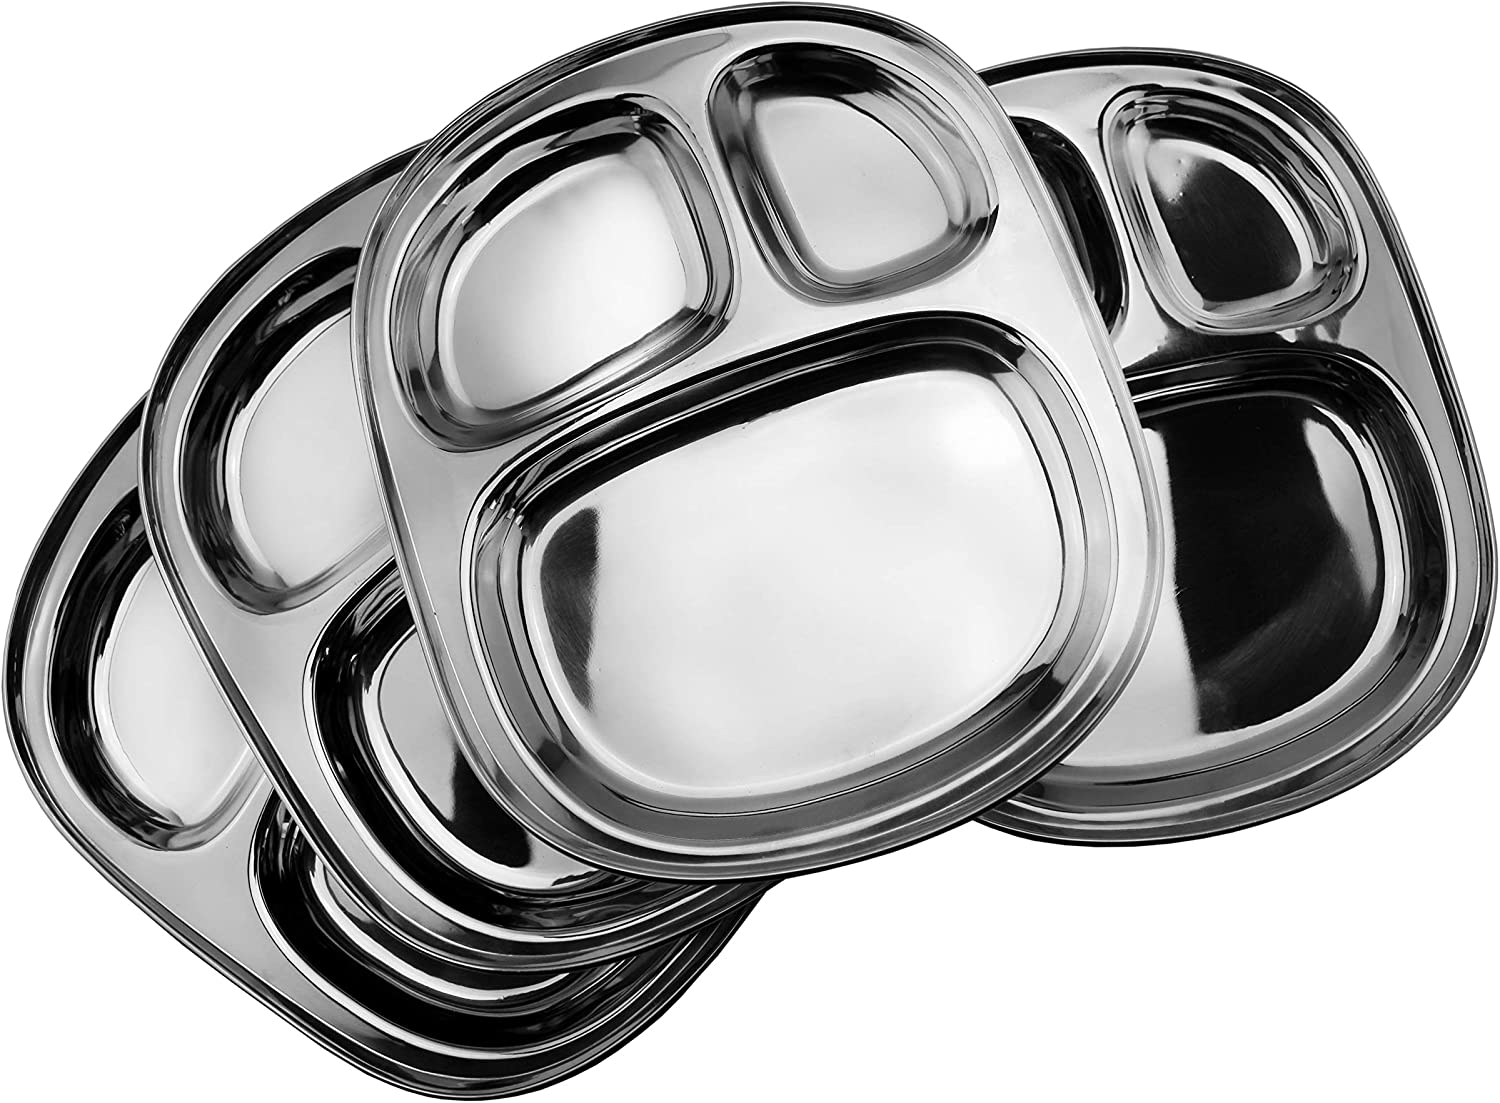 Stainless Steel Divided Plates/Compartment Trays (4-Pack); 9.8 x 8.1 Inches Oblong 3-Section Mini Mess Trays, Great Size for Lunches, Kids, Portion Control, Camping & More